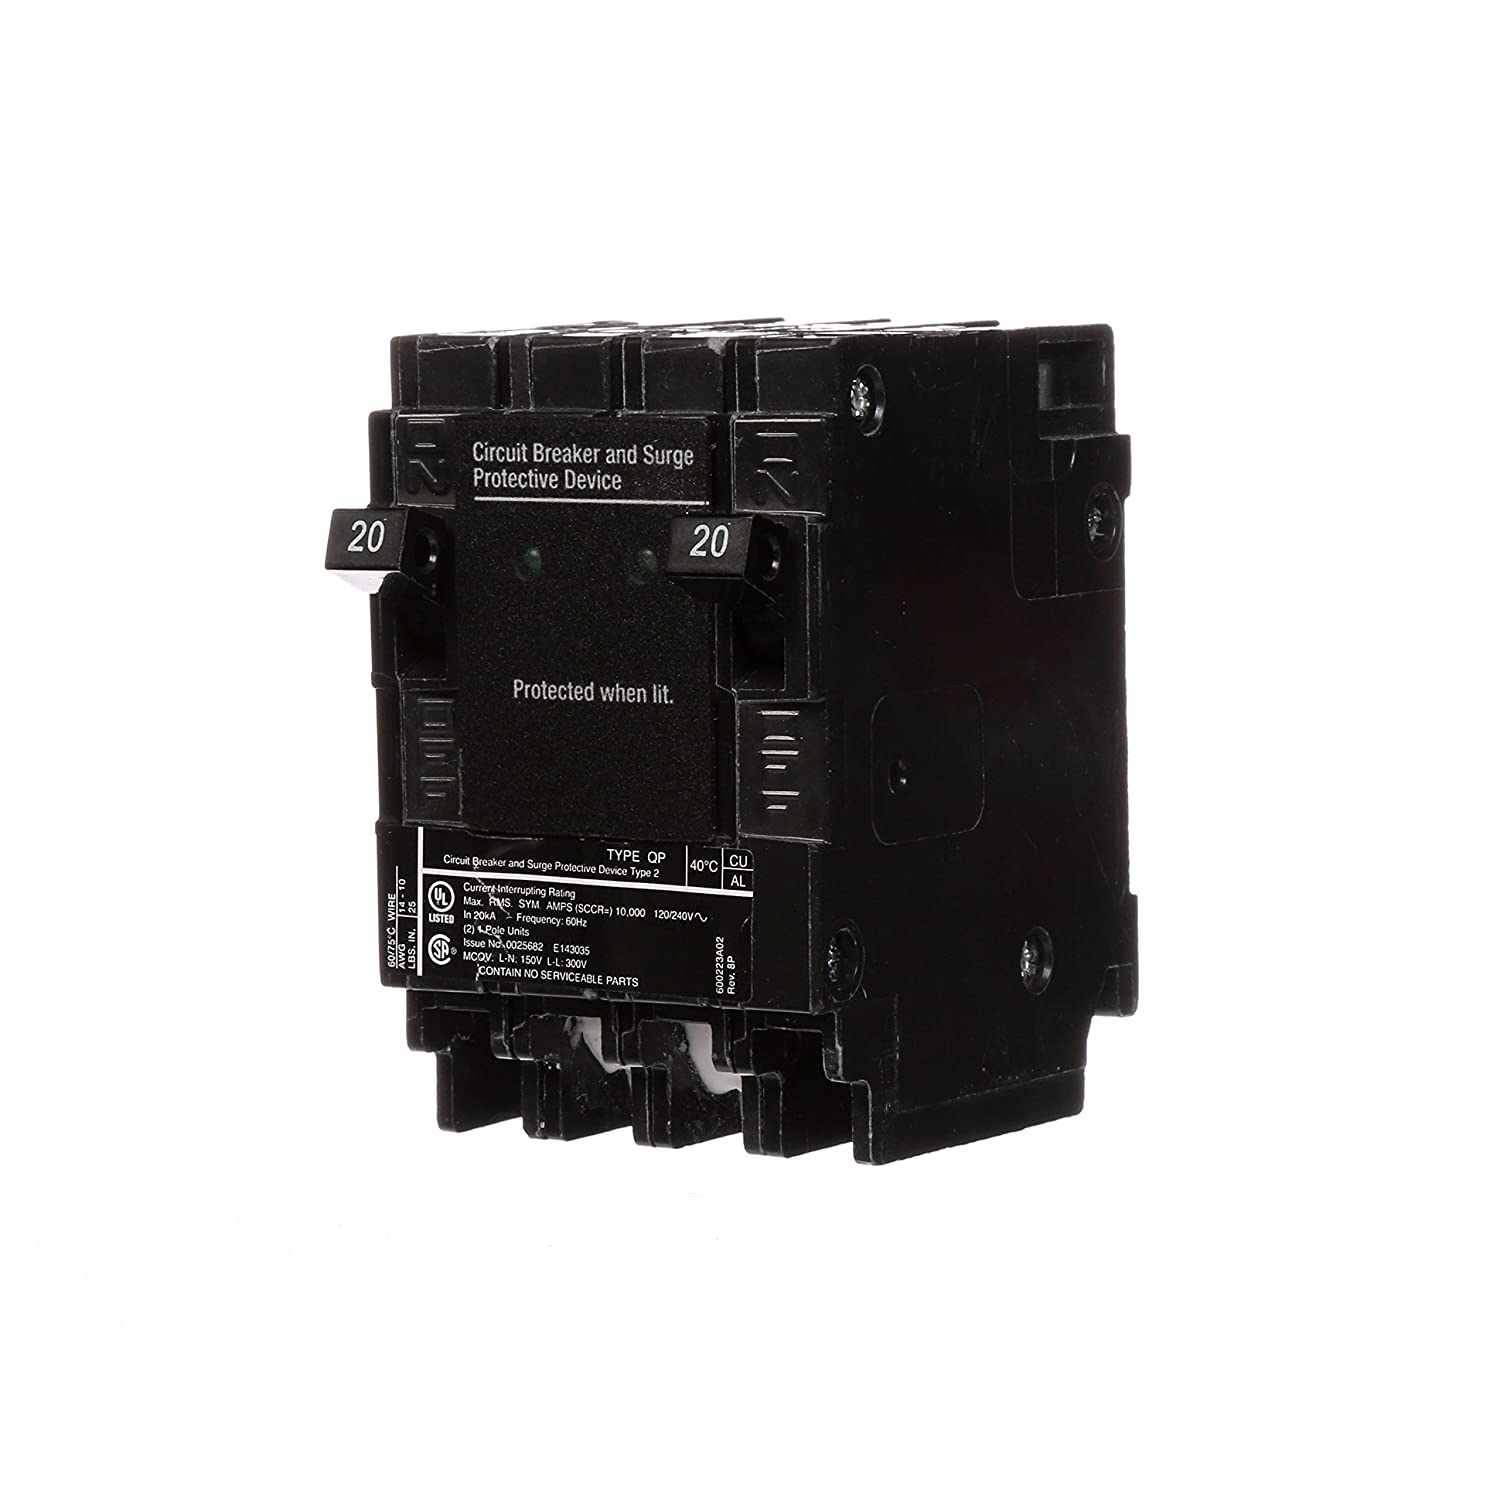 Siemens QSA2020SPD Whole House Surge Protection with Two 20-Amp Circuit Breakers for Use Only on Siemens Panels